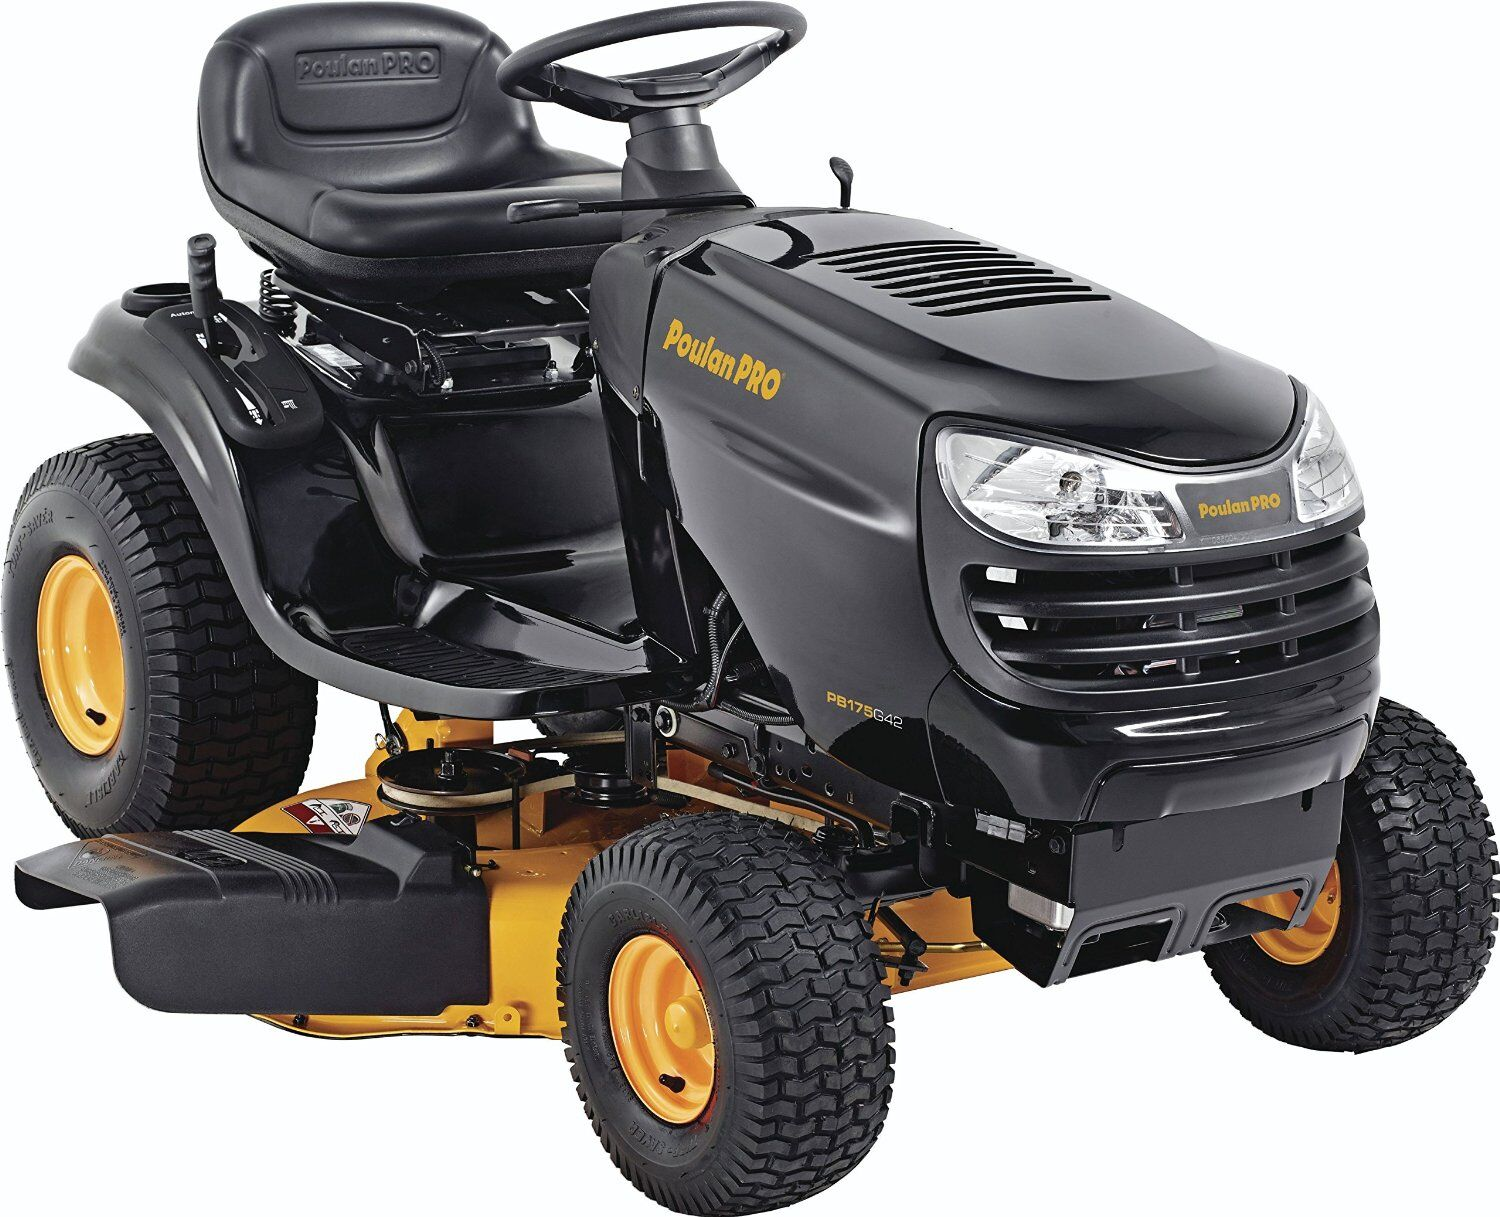 Poulan Lawn Tractors : More lawn mowers to choose from